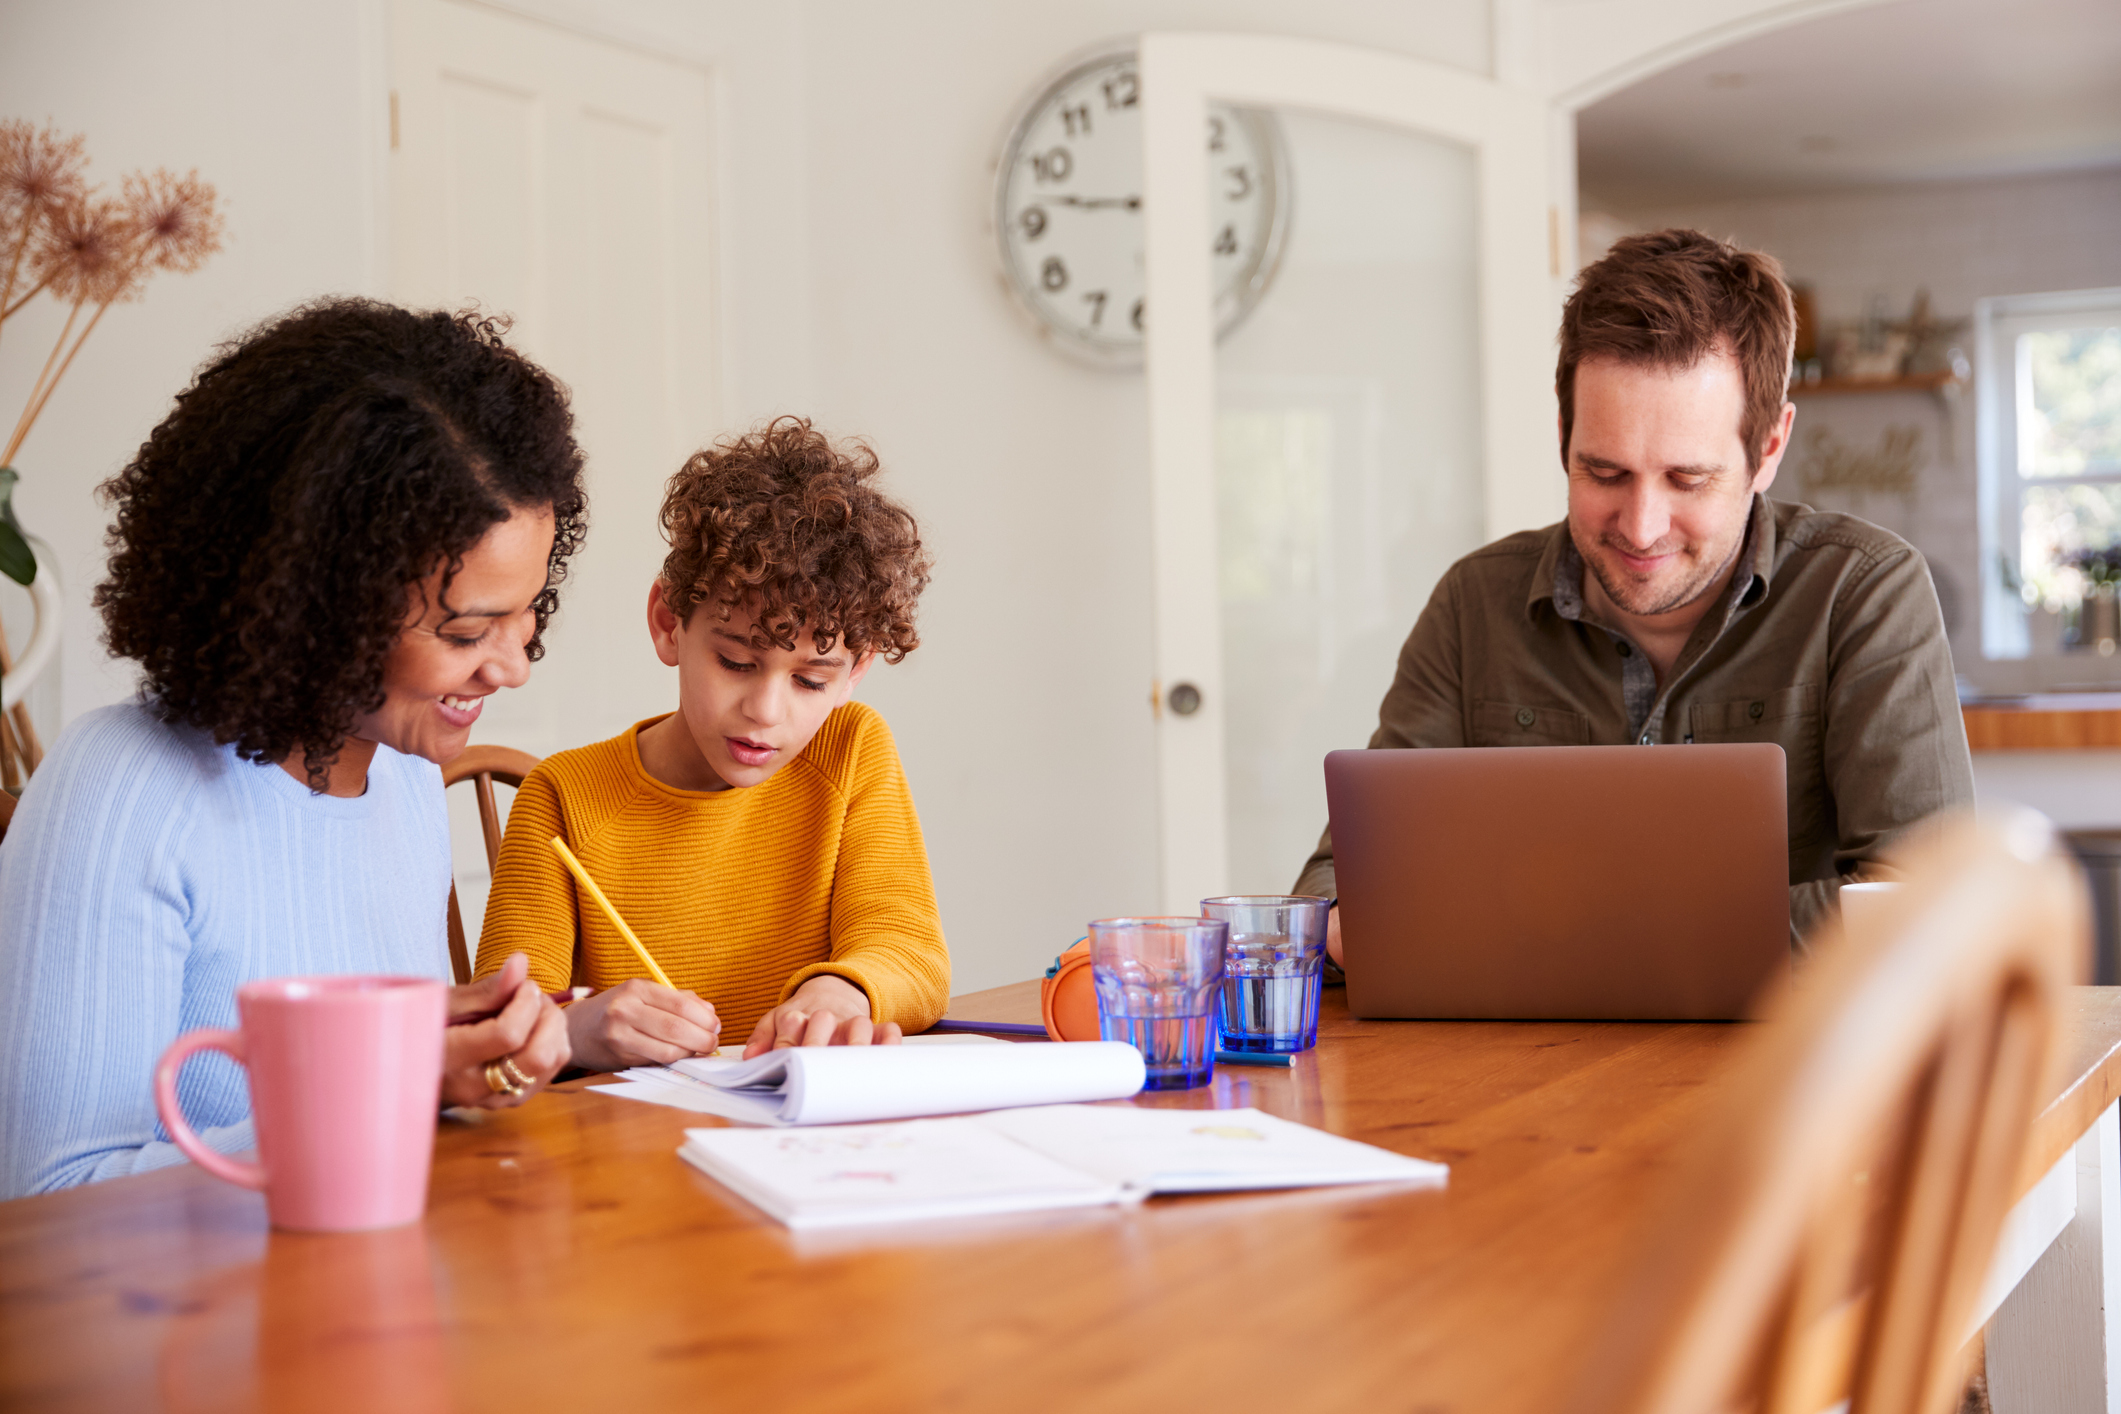 Parents helping child with schoolwork. Image credit: iStock